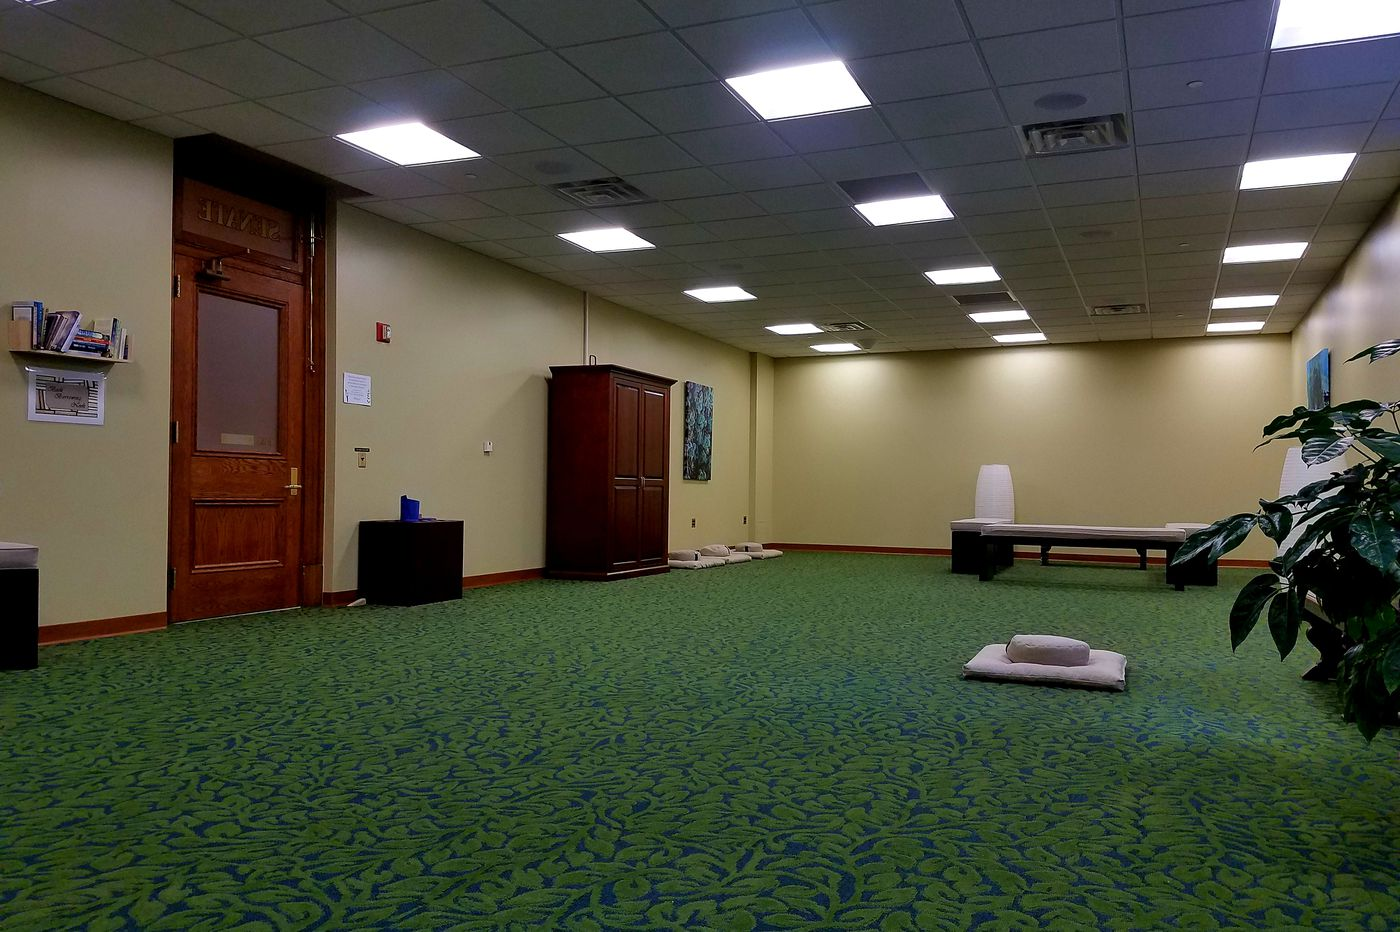 There's a yoga room in the state Capitol. Guess who paid for it? | John Baer